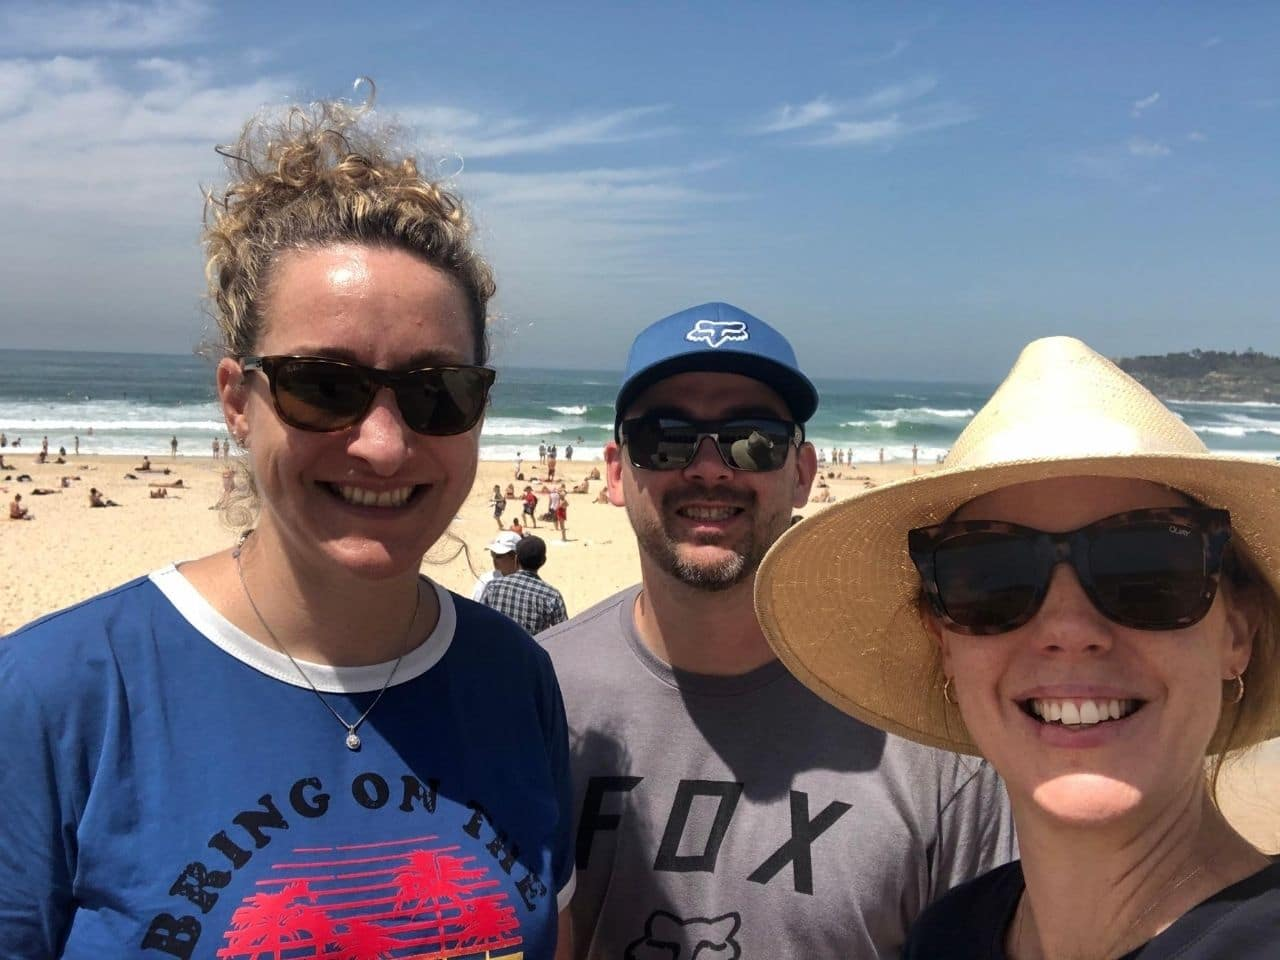 Tour guide and couple taking selfie at Bondi Beach wearing hats standing in front of ocean